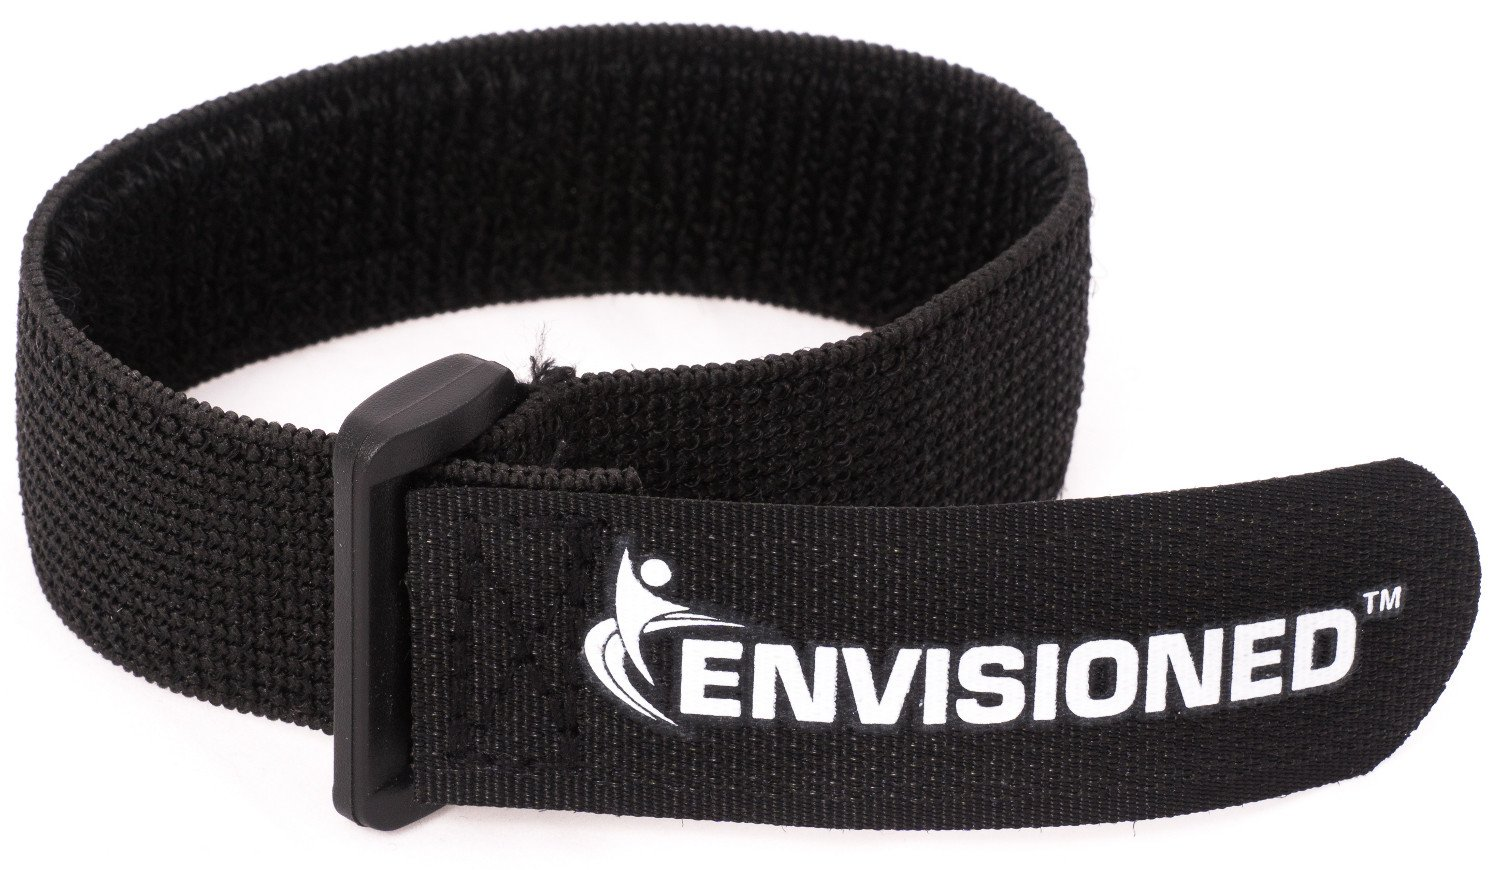 Elastic Reusable Cinch Straps 1'x20' - 10 Pack Hook and Loop - Plus 2 Free Bonus Reusable Cable Ties Envisioned Products Inc.